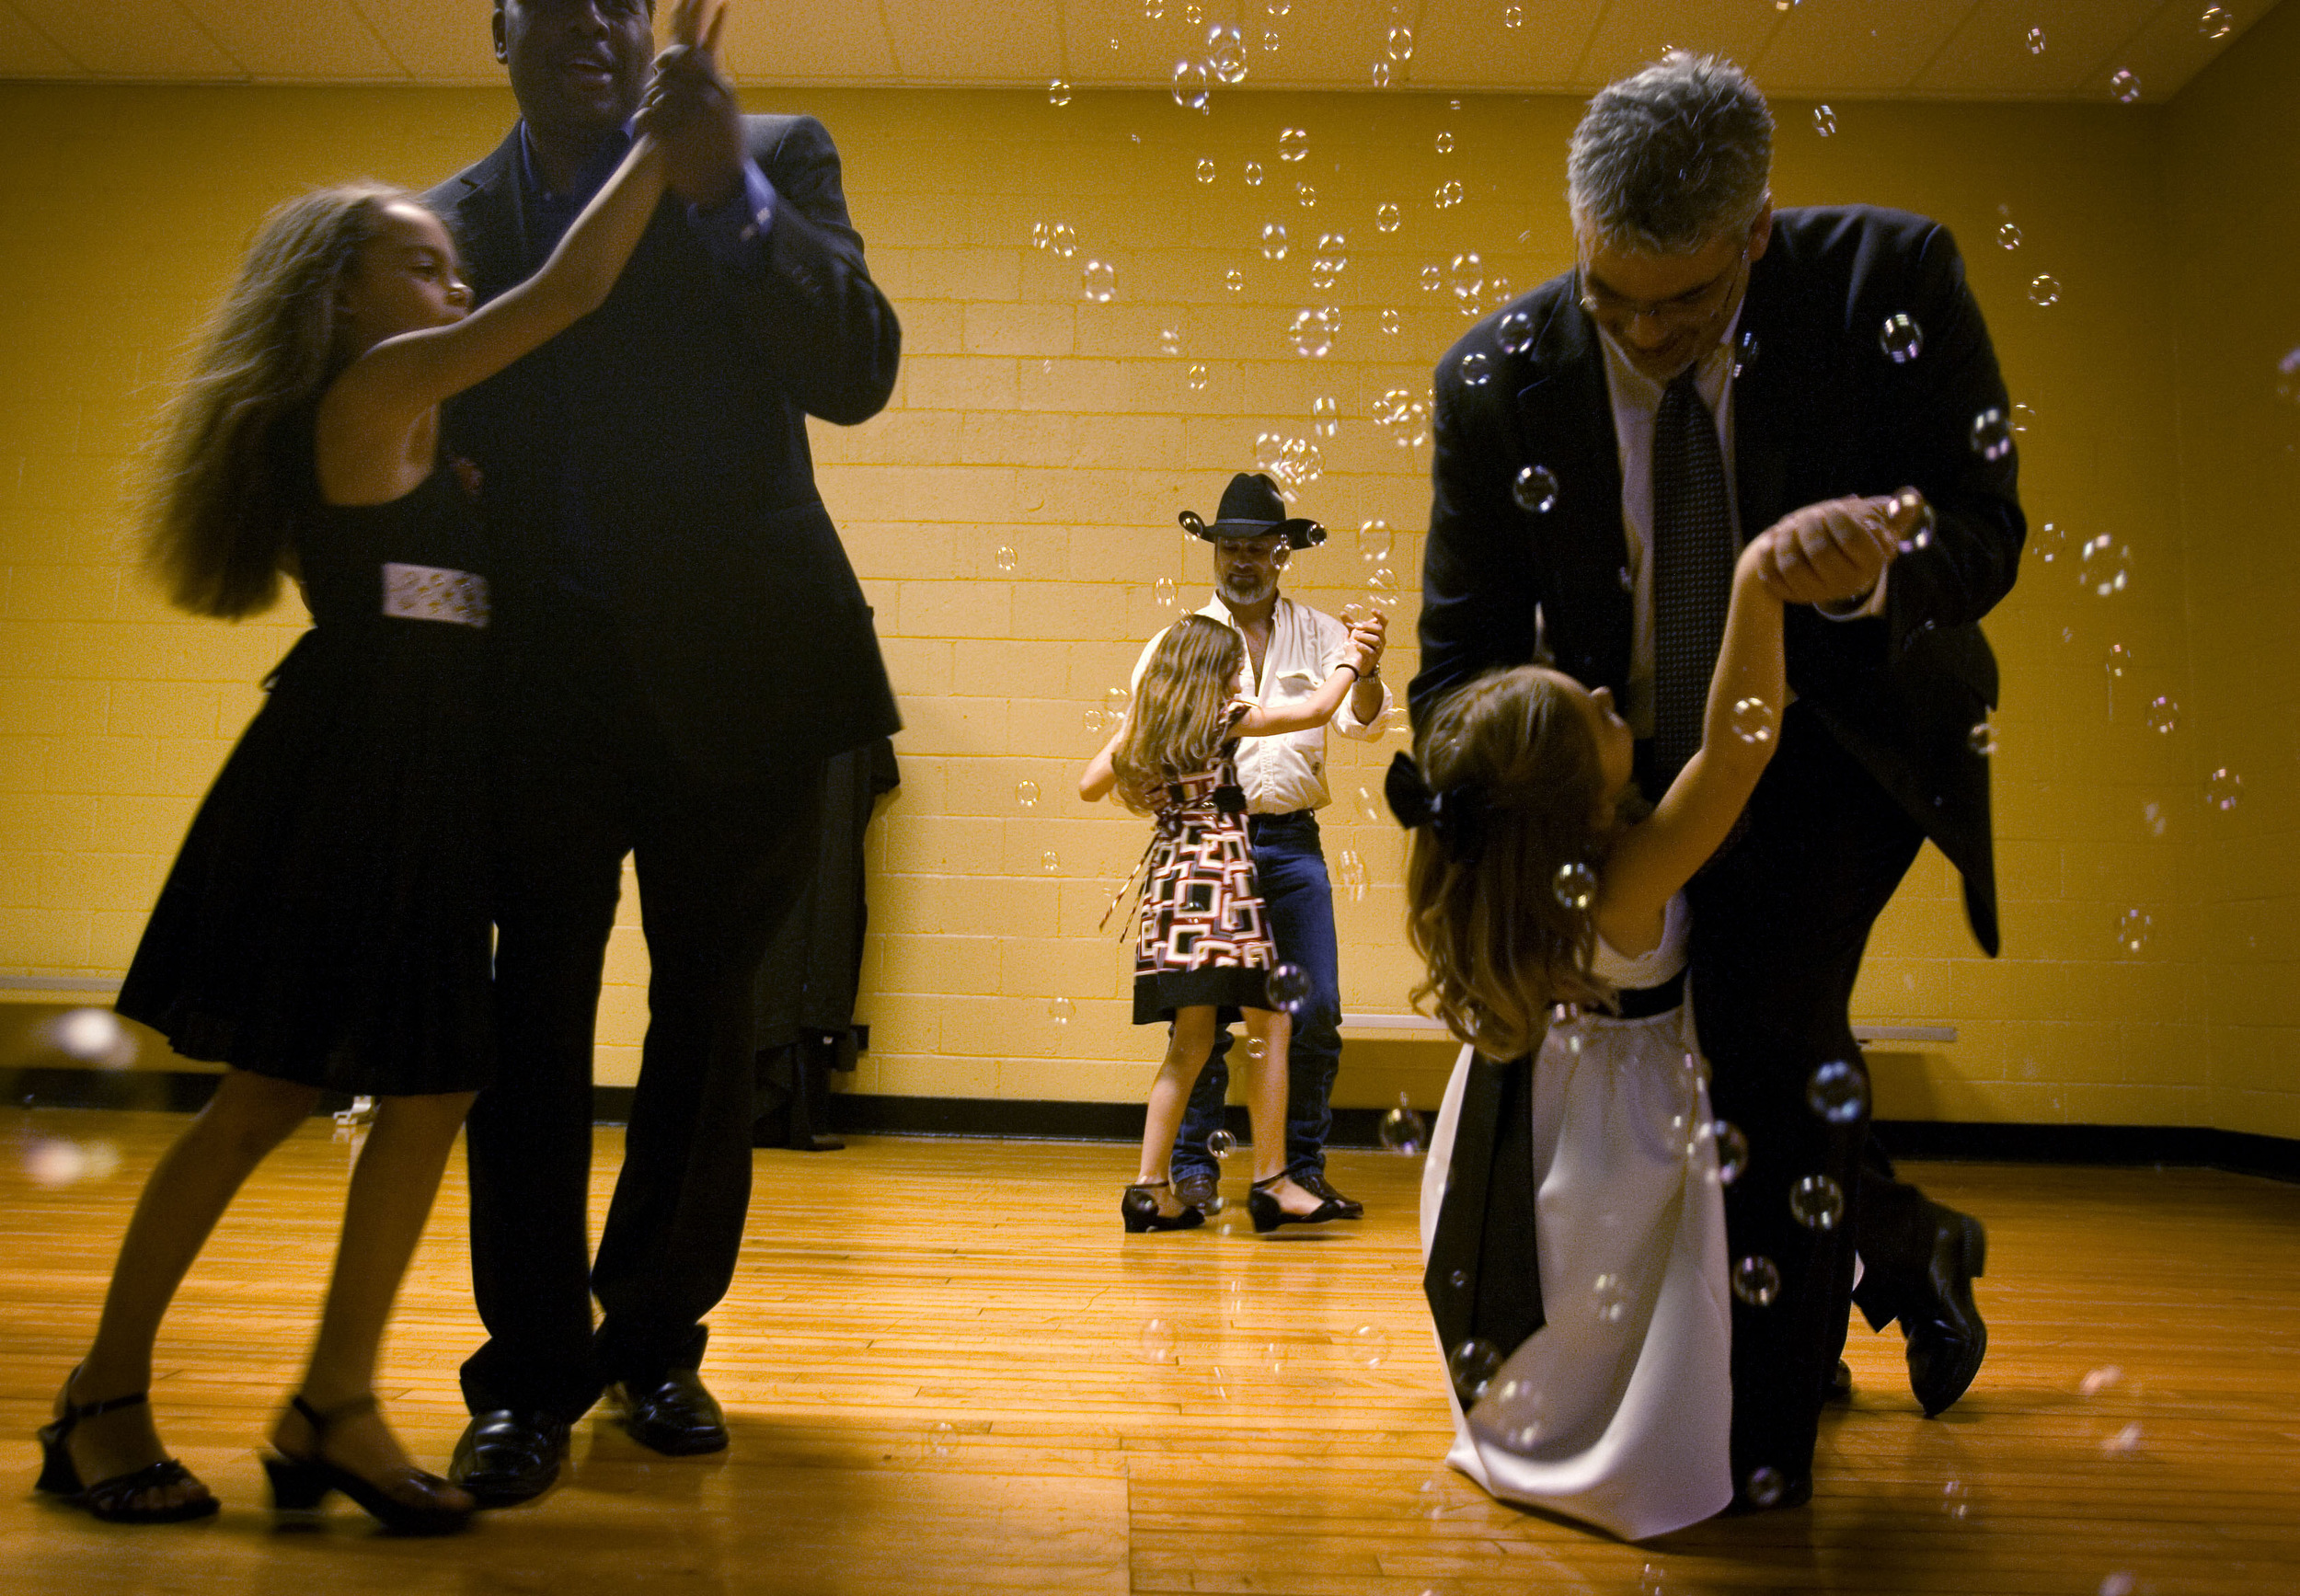 Father Roddy Ramirez, dips daughter Allison, 7, right, as they take the stage as one of the winners of the chicken dance contest during a father-daughter dance in Fairview, Tenn.